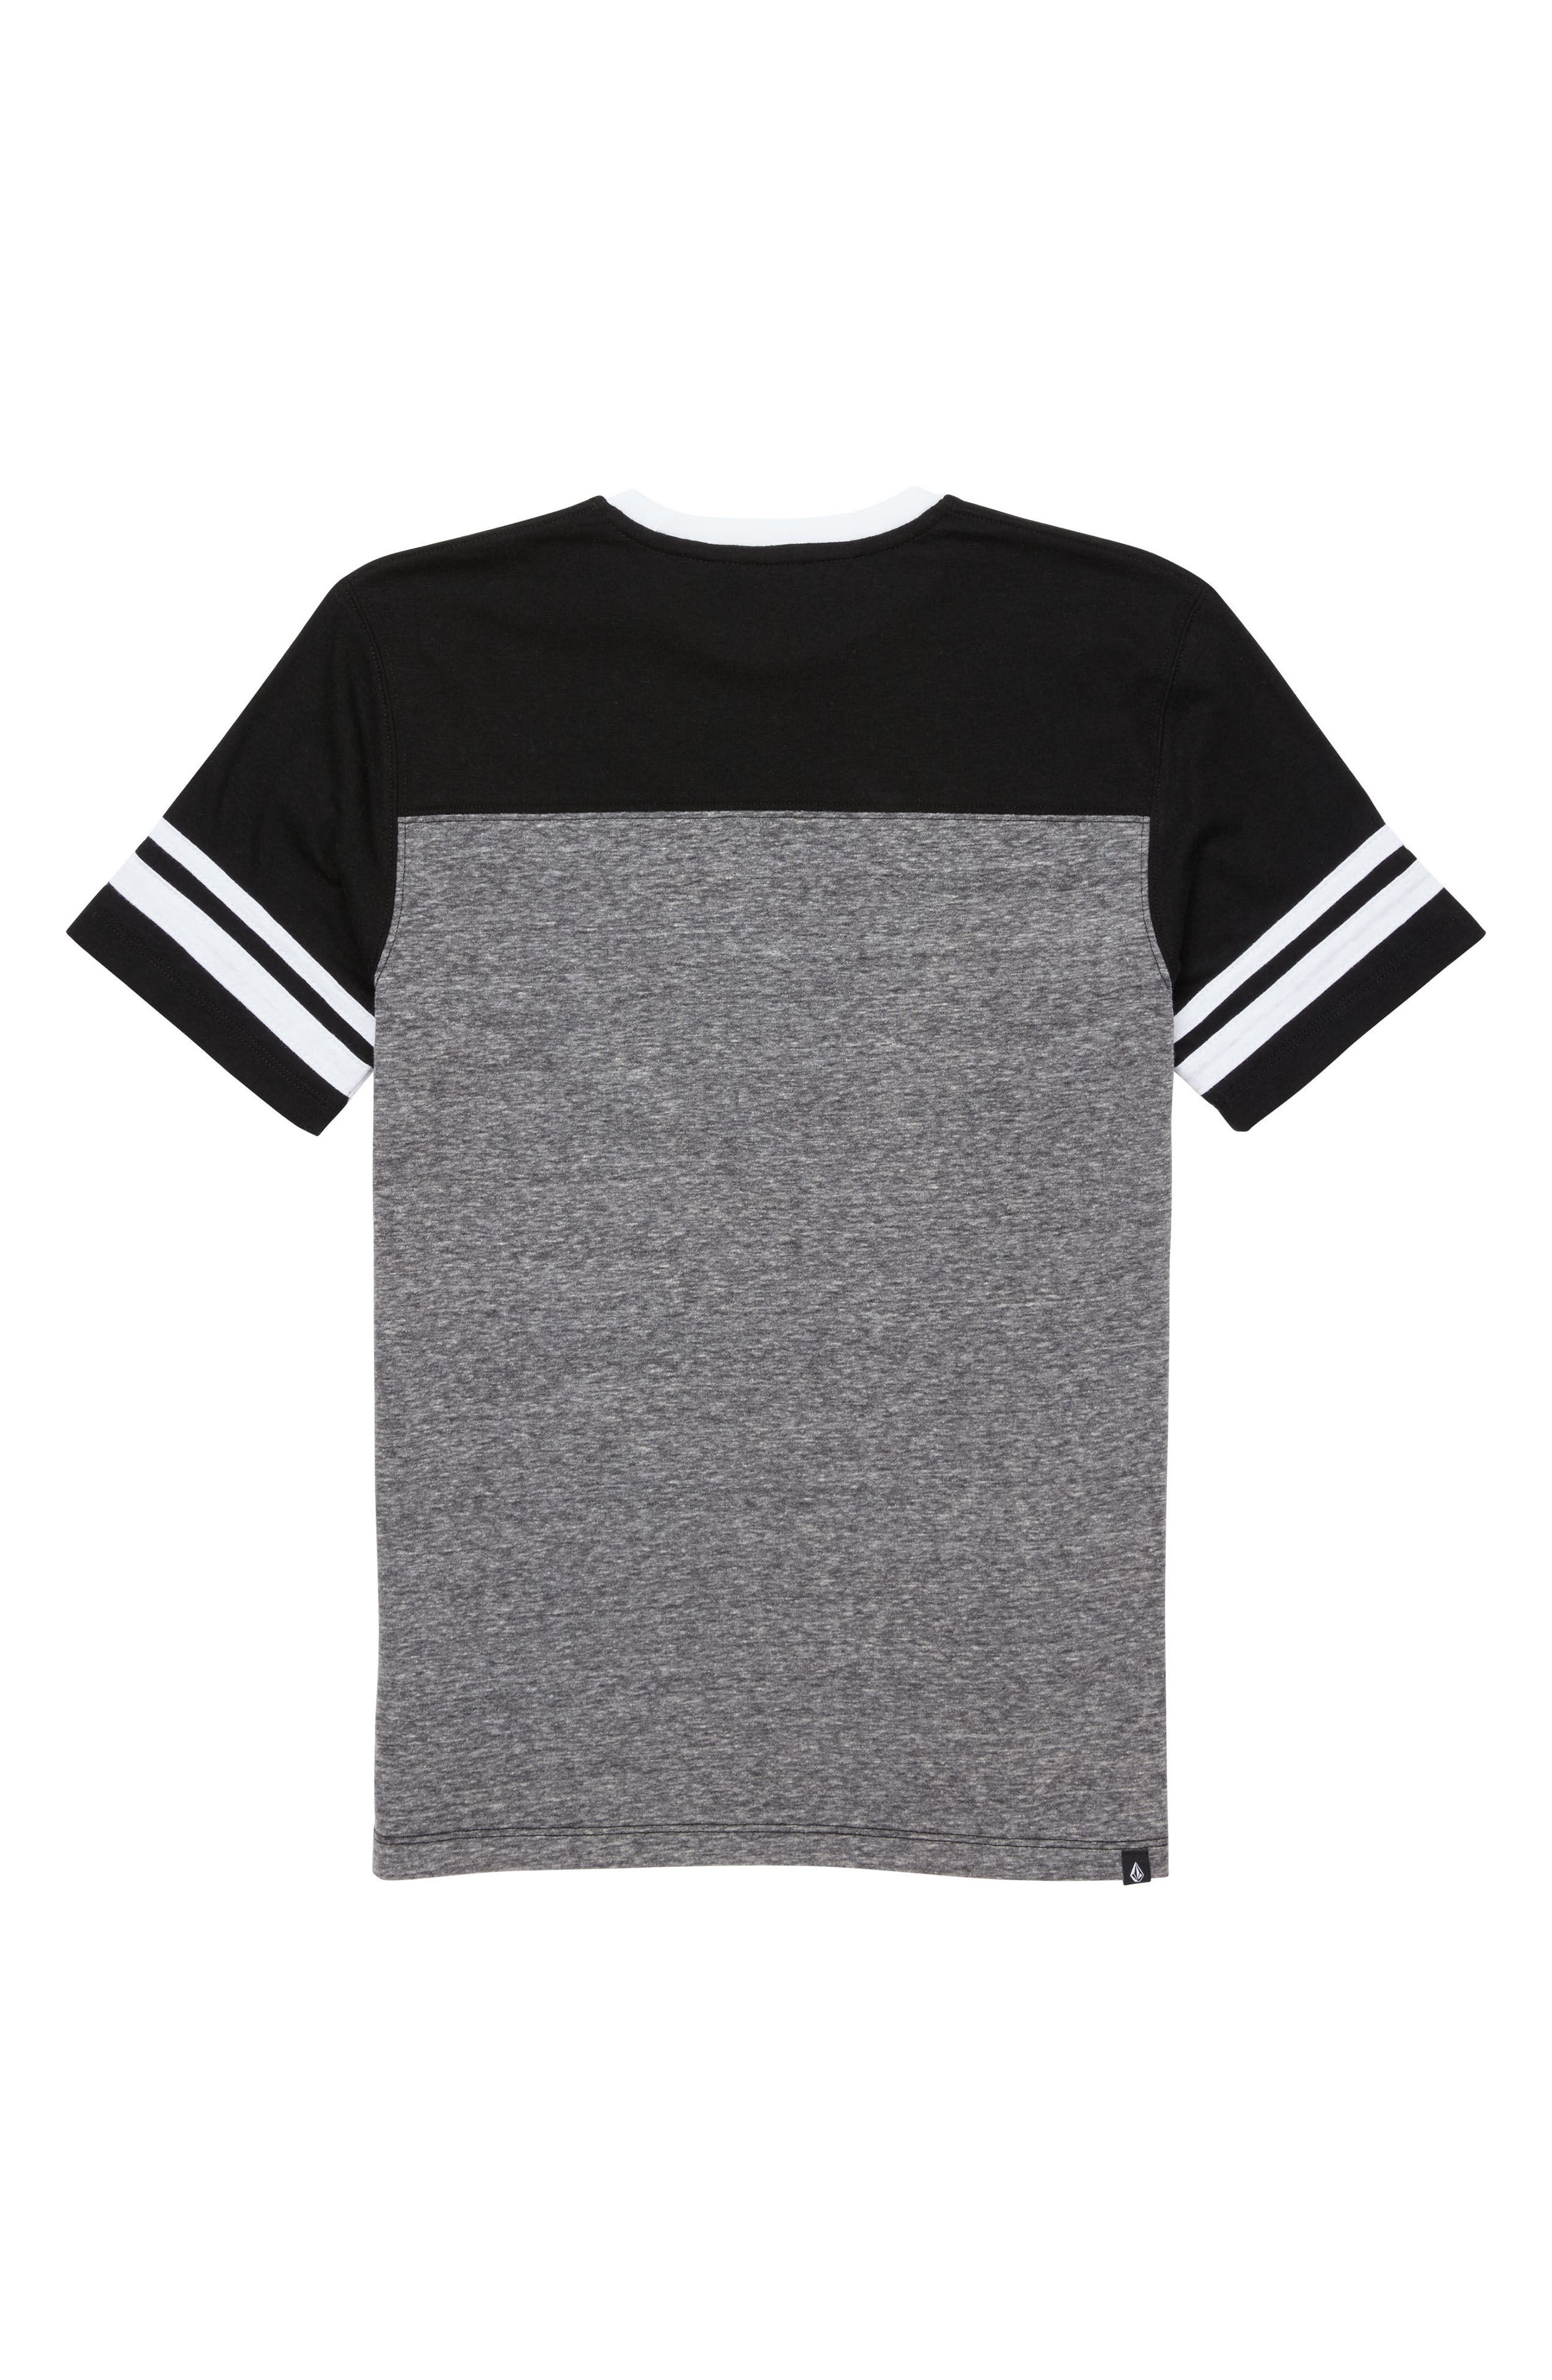 Walden Crewneck Shirt,                             Alternate thumbnail 2, color,                             Black